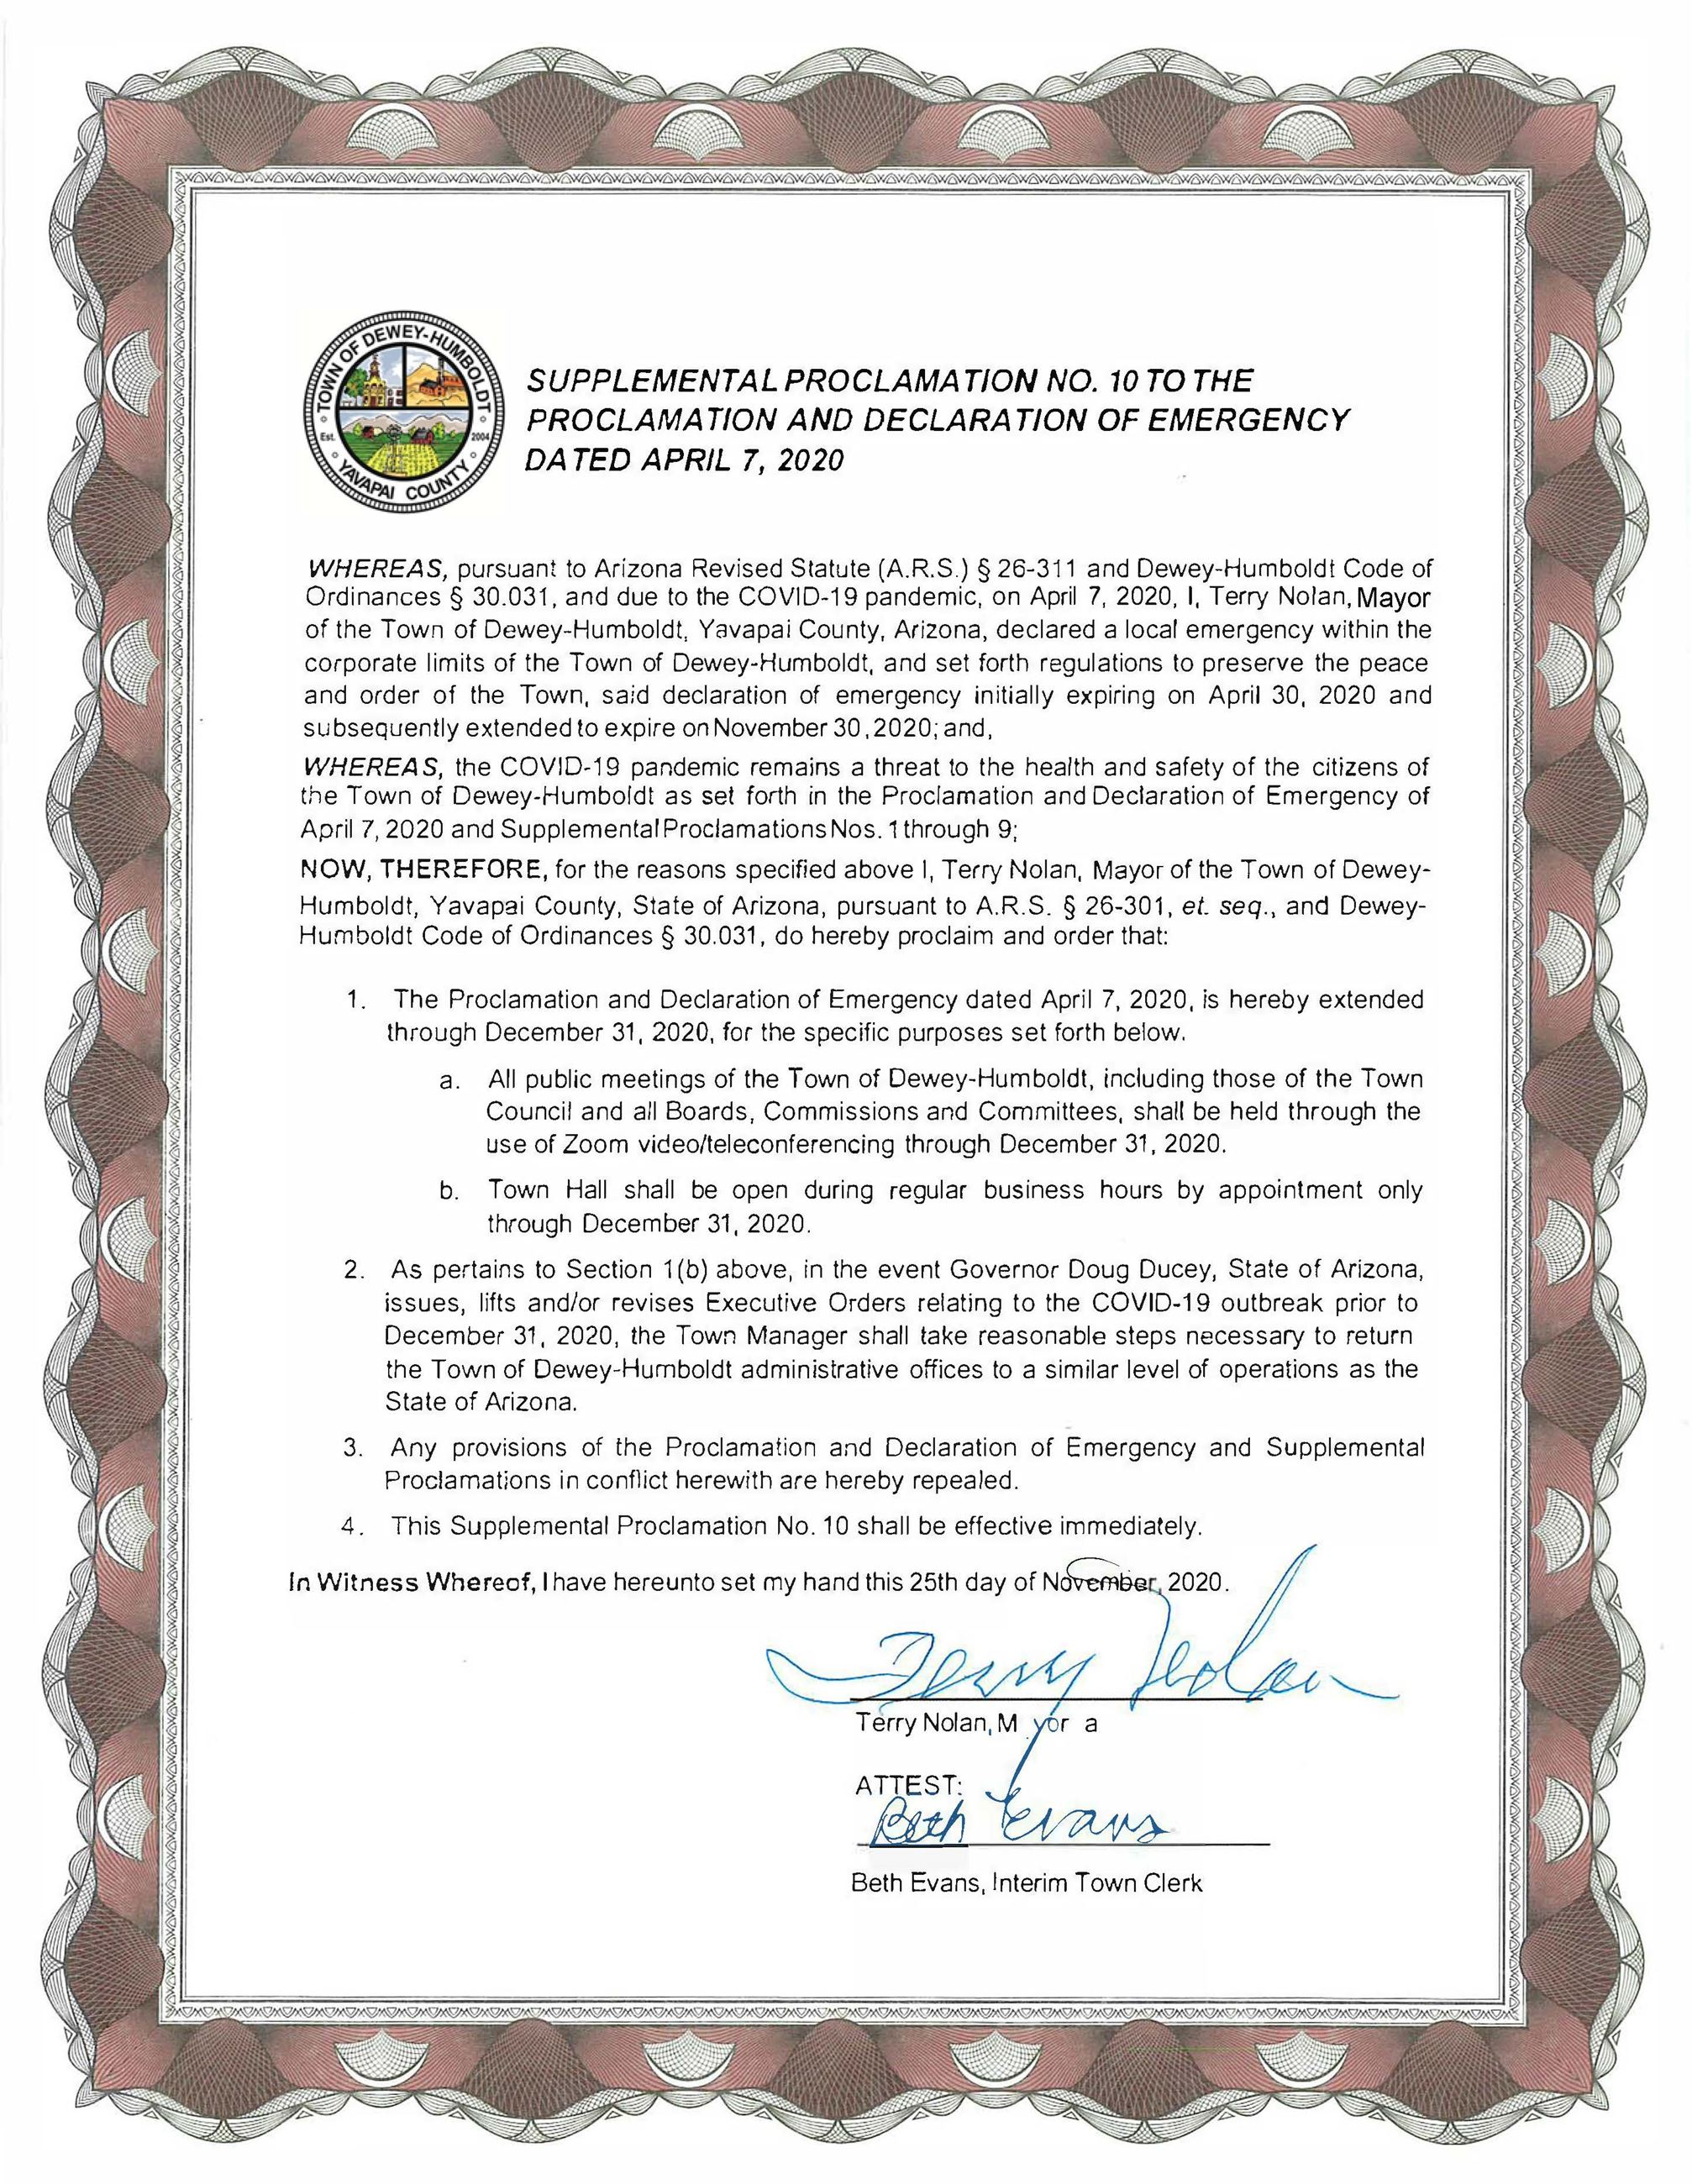 Supplemental Proclamation 10